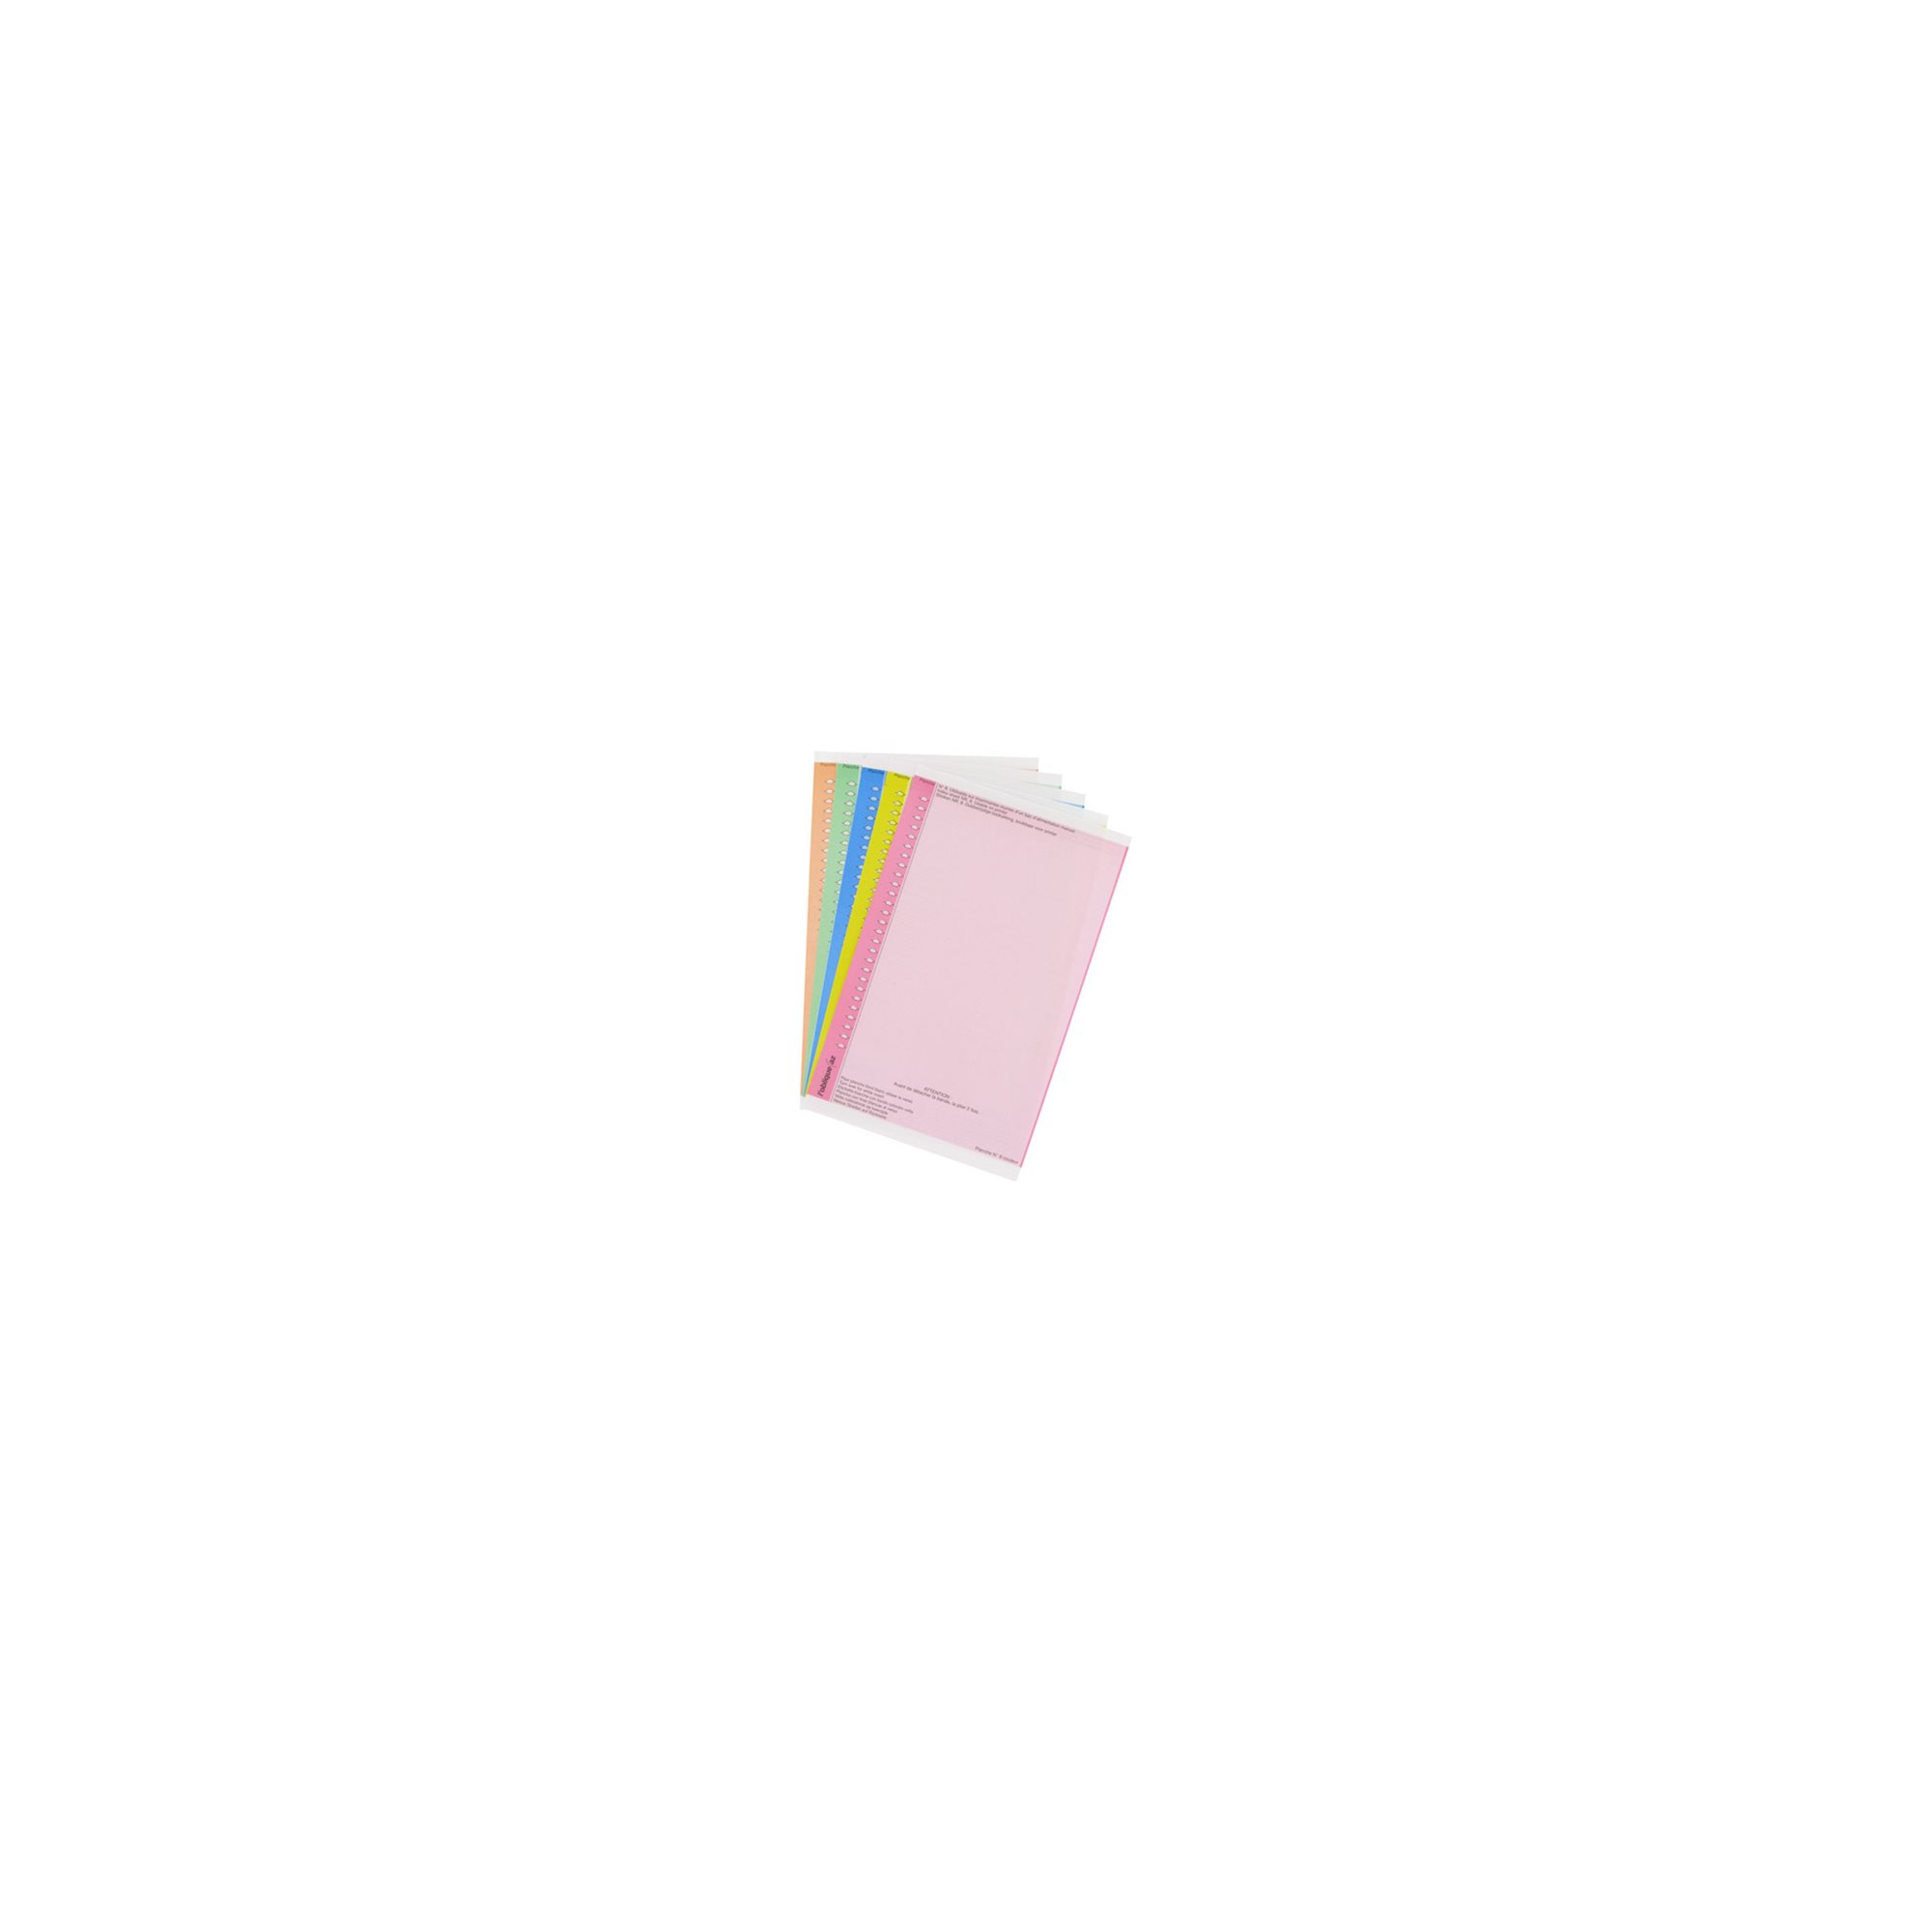 Sachet of 10 sheets with labels n°8 for cupboards